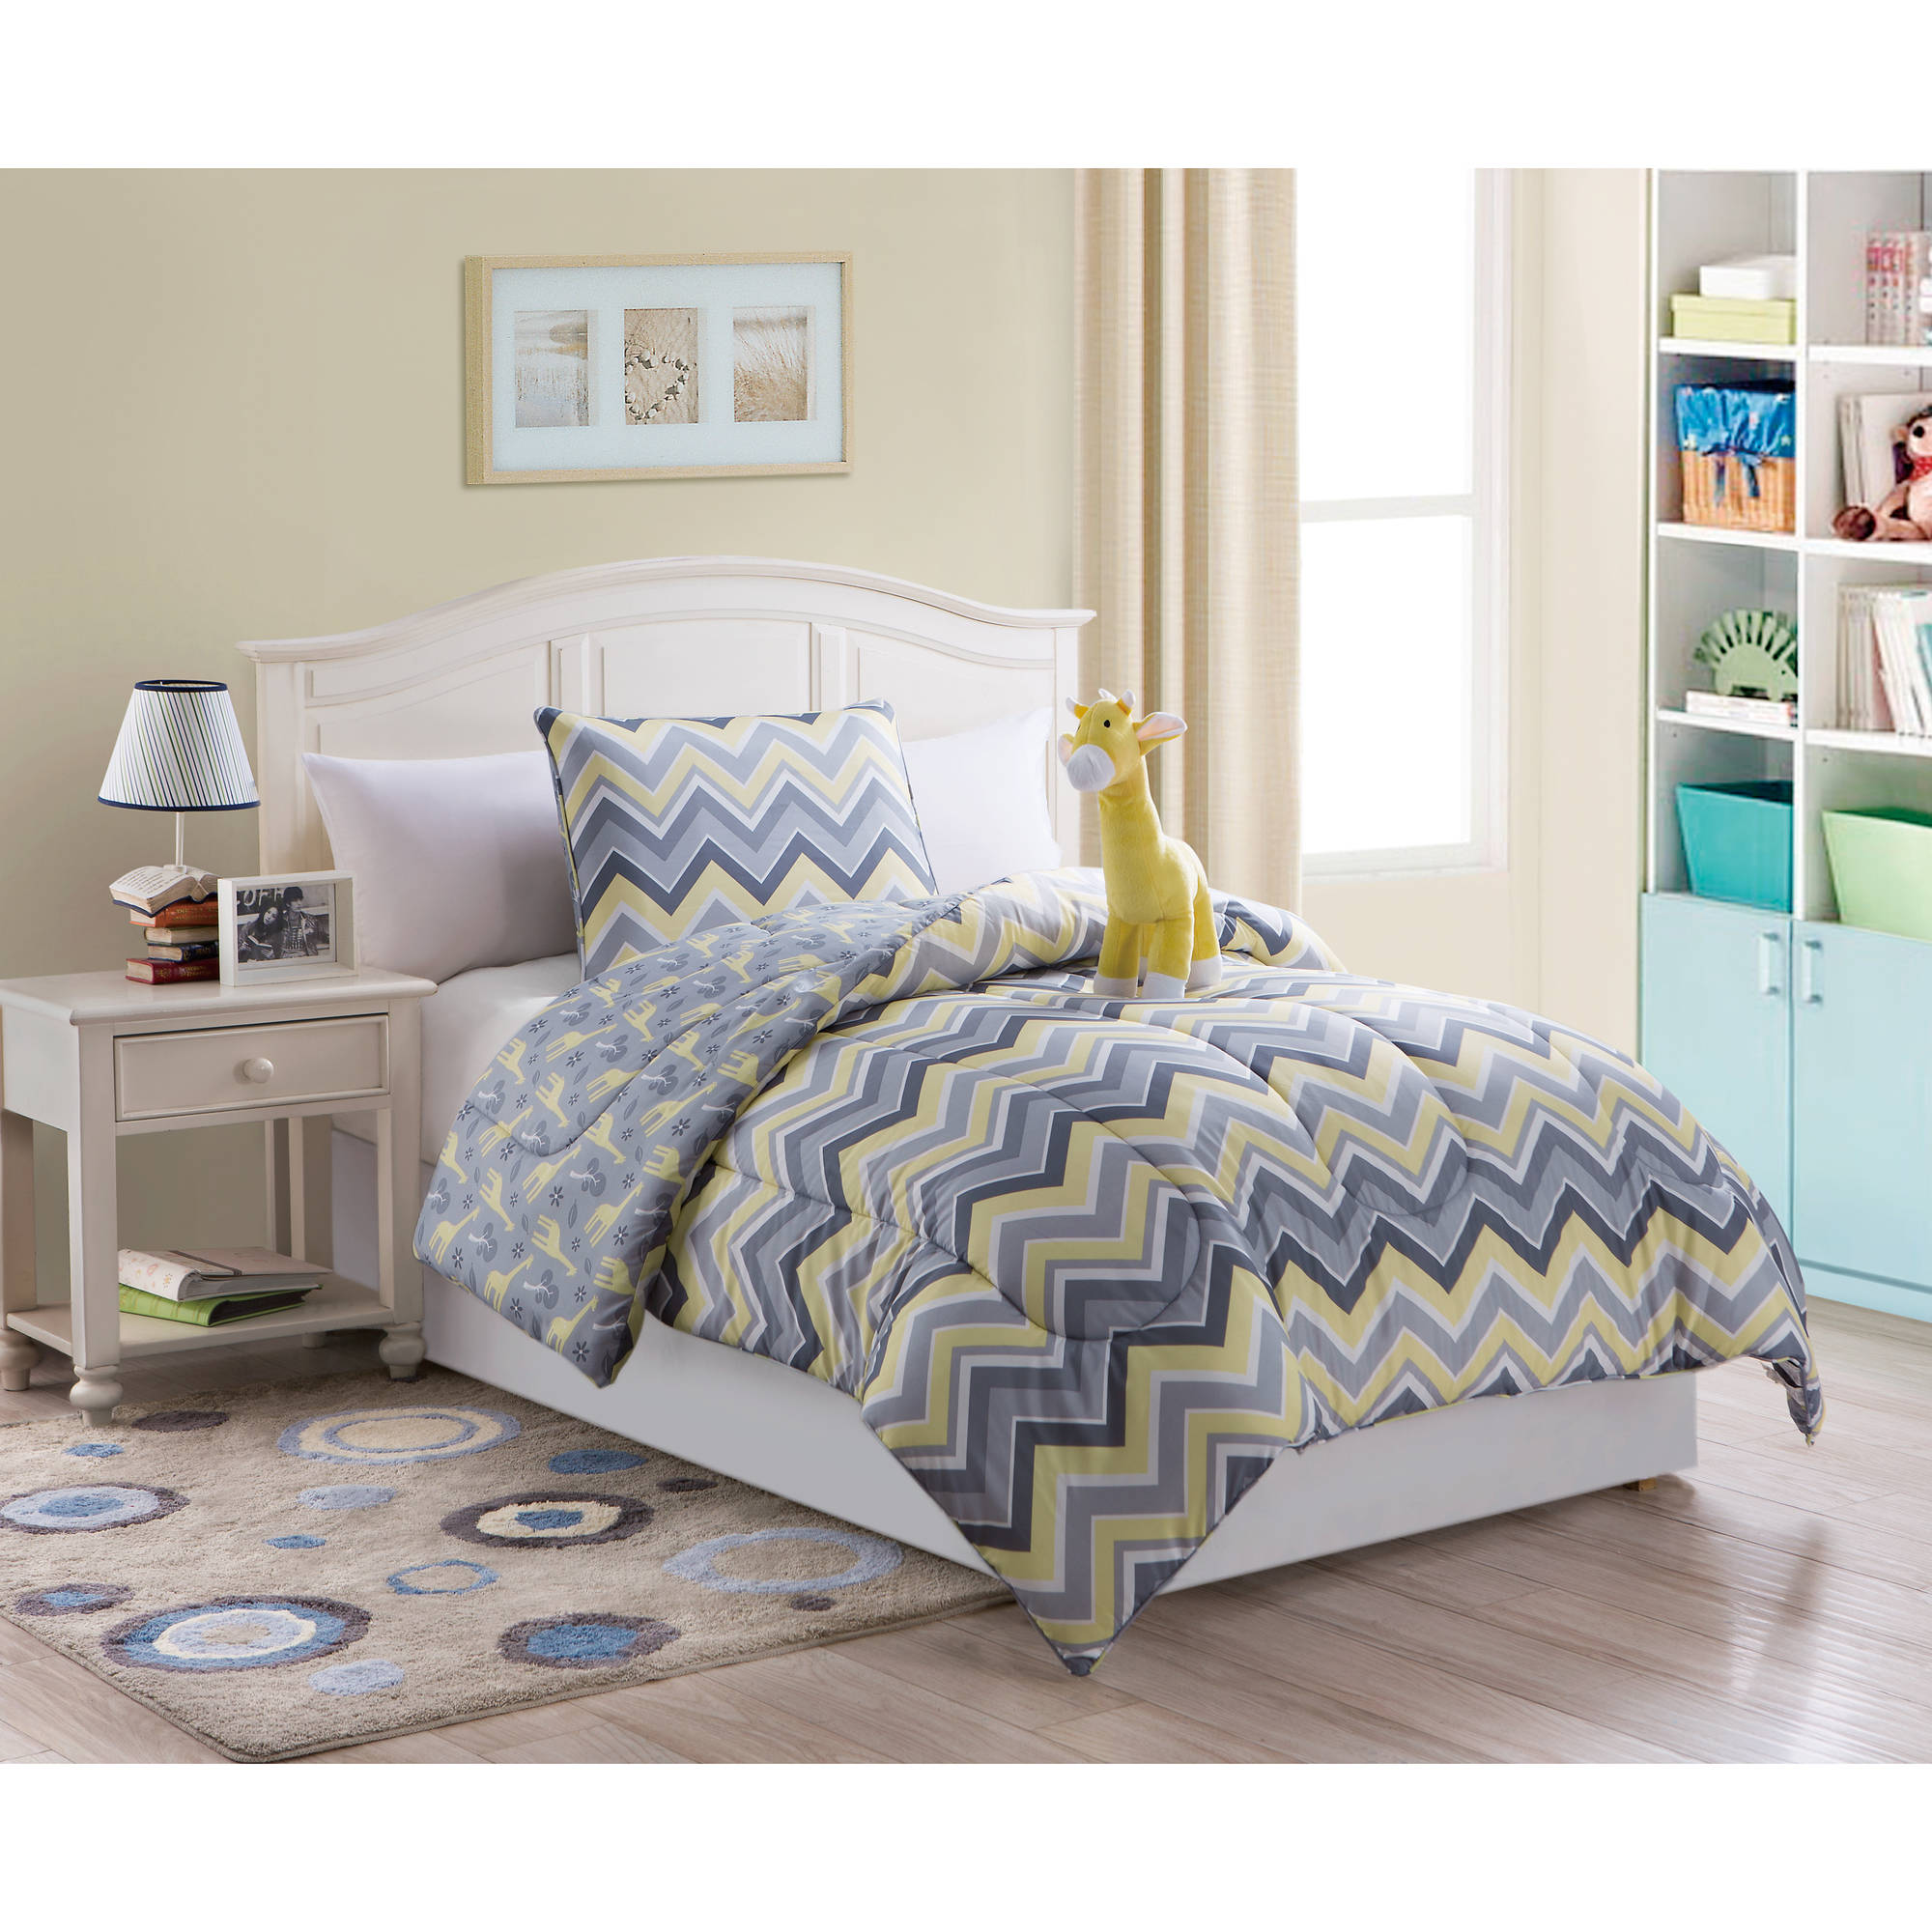 ***DISCONTINUE*** VCNY Home Giraffe 3-Piece Bedding Set